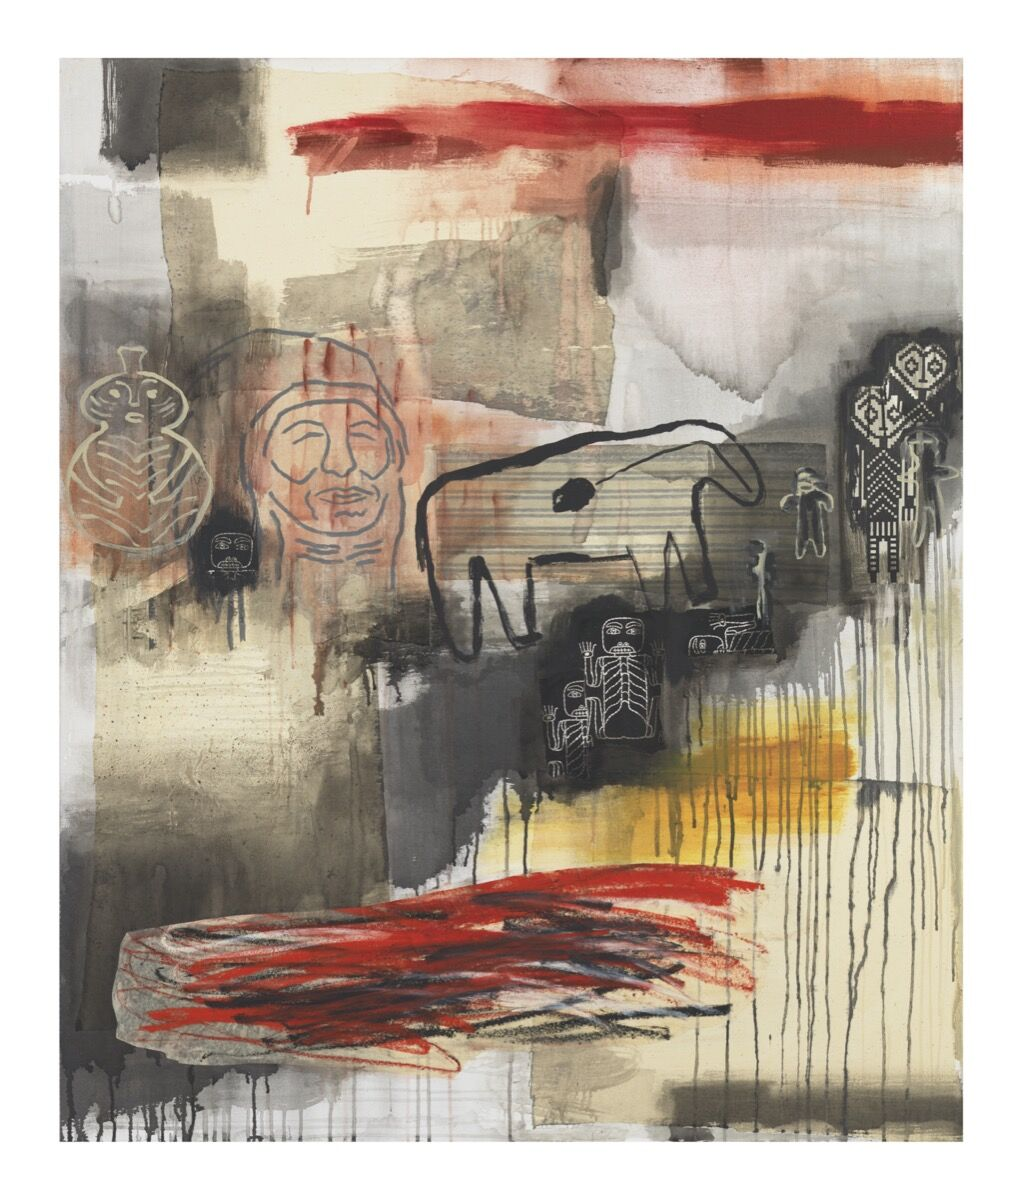 Jaune Quick-to-See Smith, I See Red: Migration, 1995. Courtesy of the artist and Garth Greenan Gallery, New York.